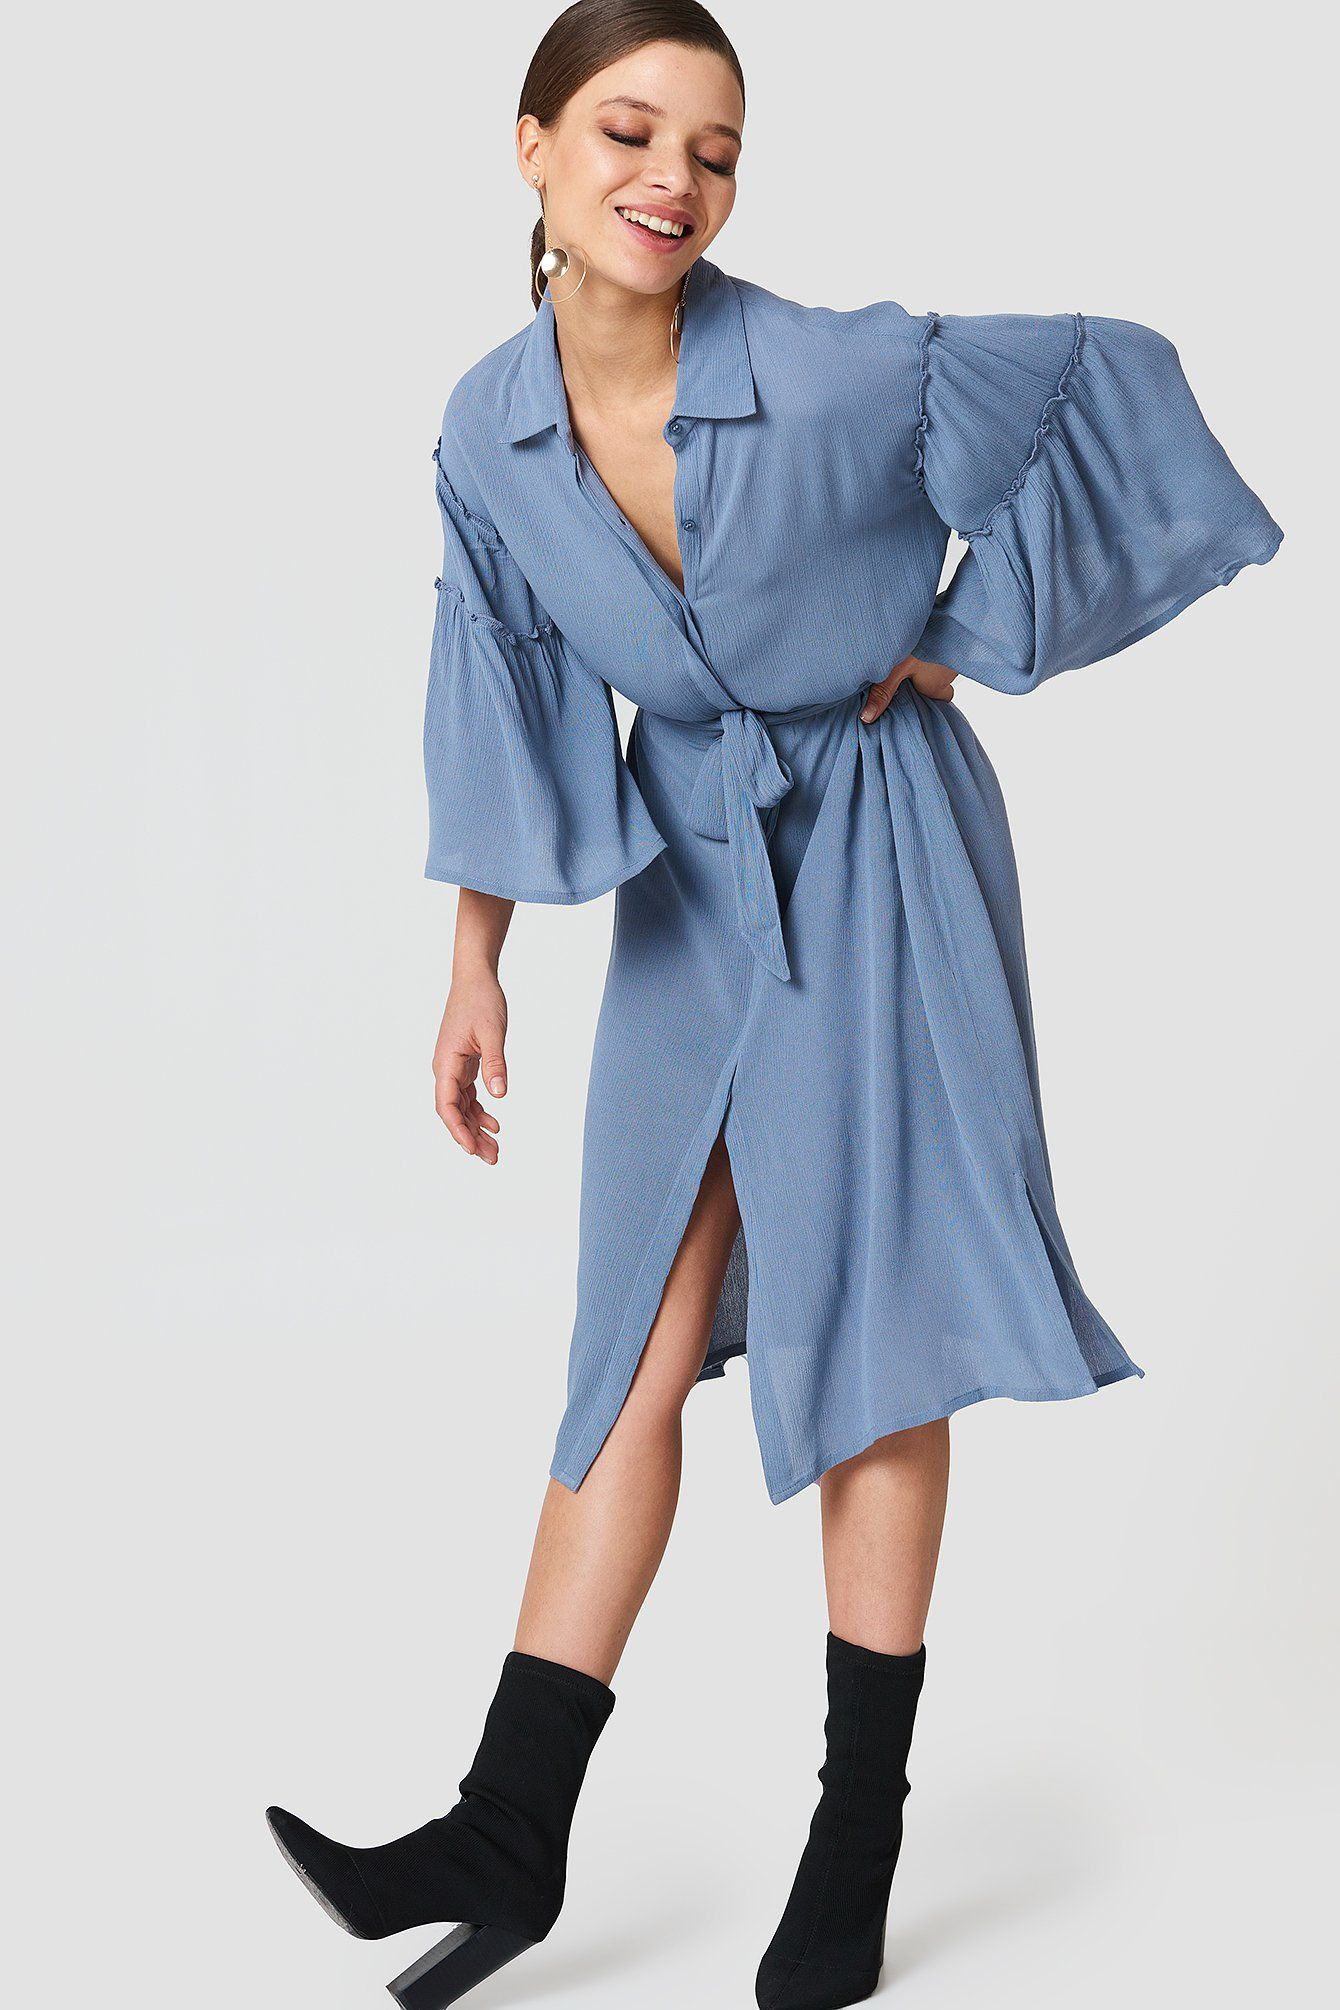 be0f4b406df5 The Flounce Sleeve Shirt Dress by NA-KD features a collared neckline ...